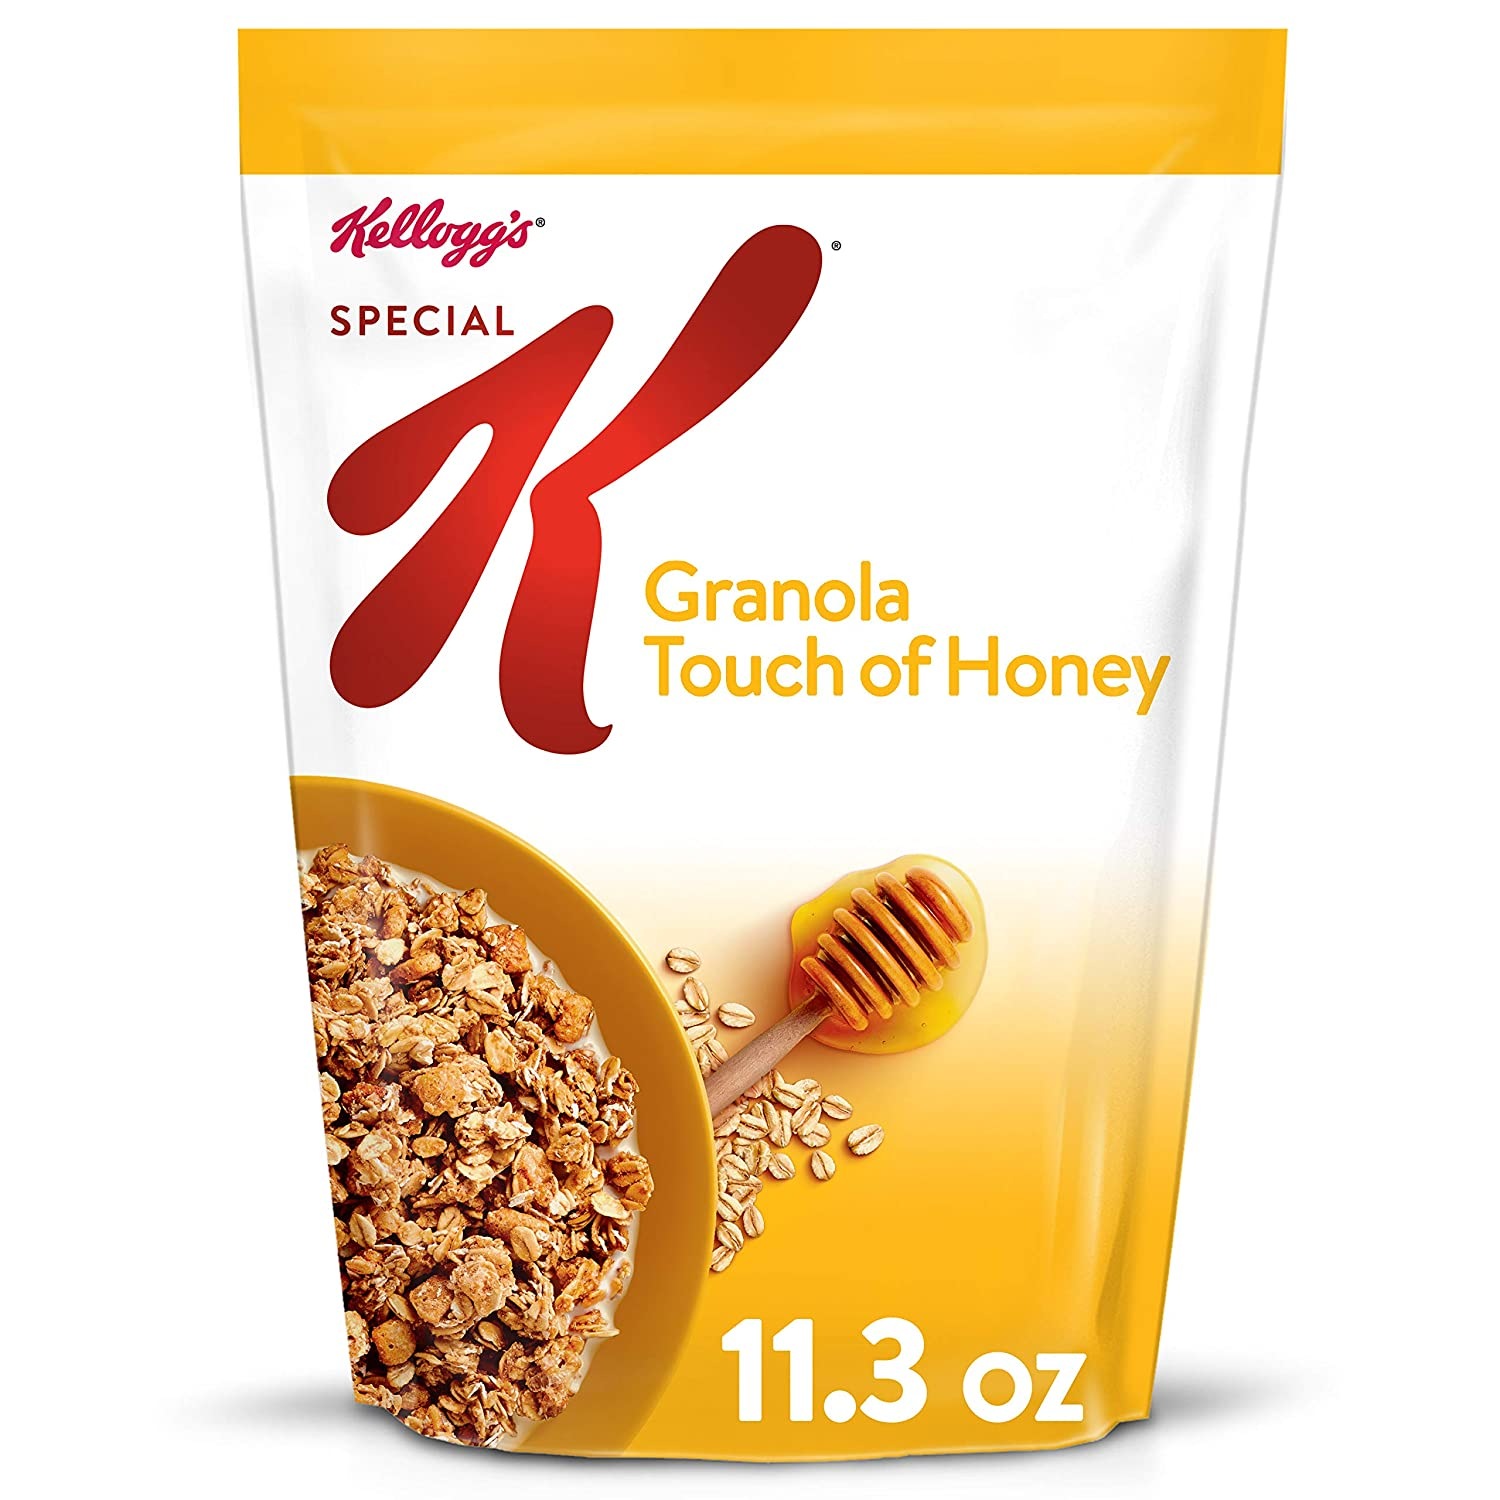 Kellogg's Special K Granola, Touch of Honey